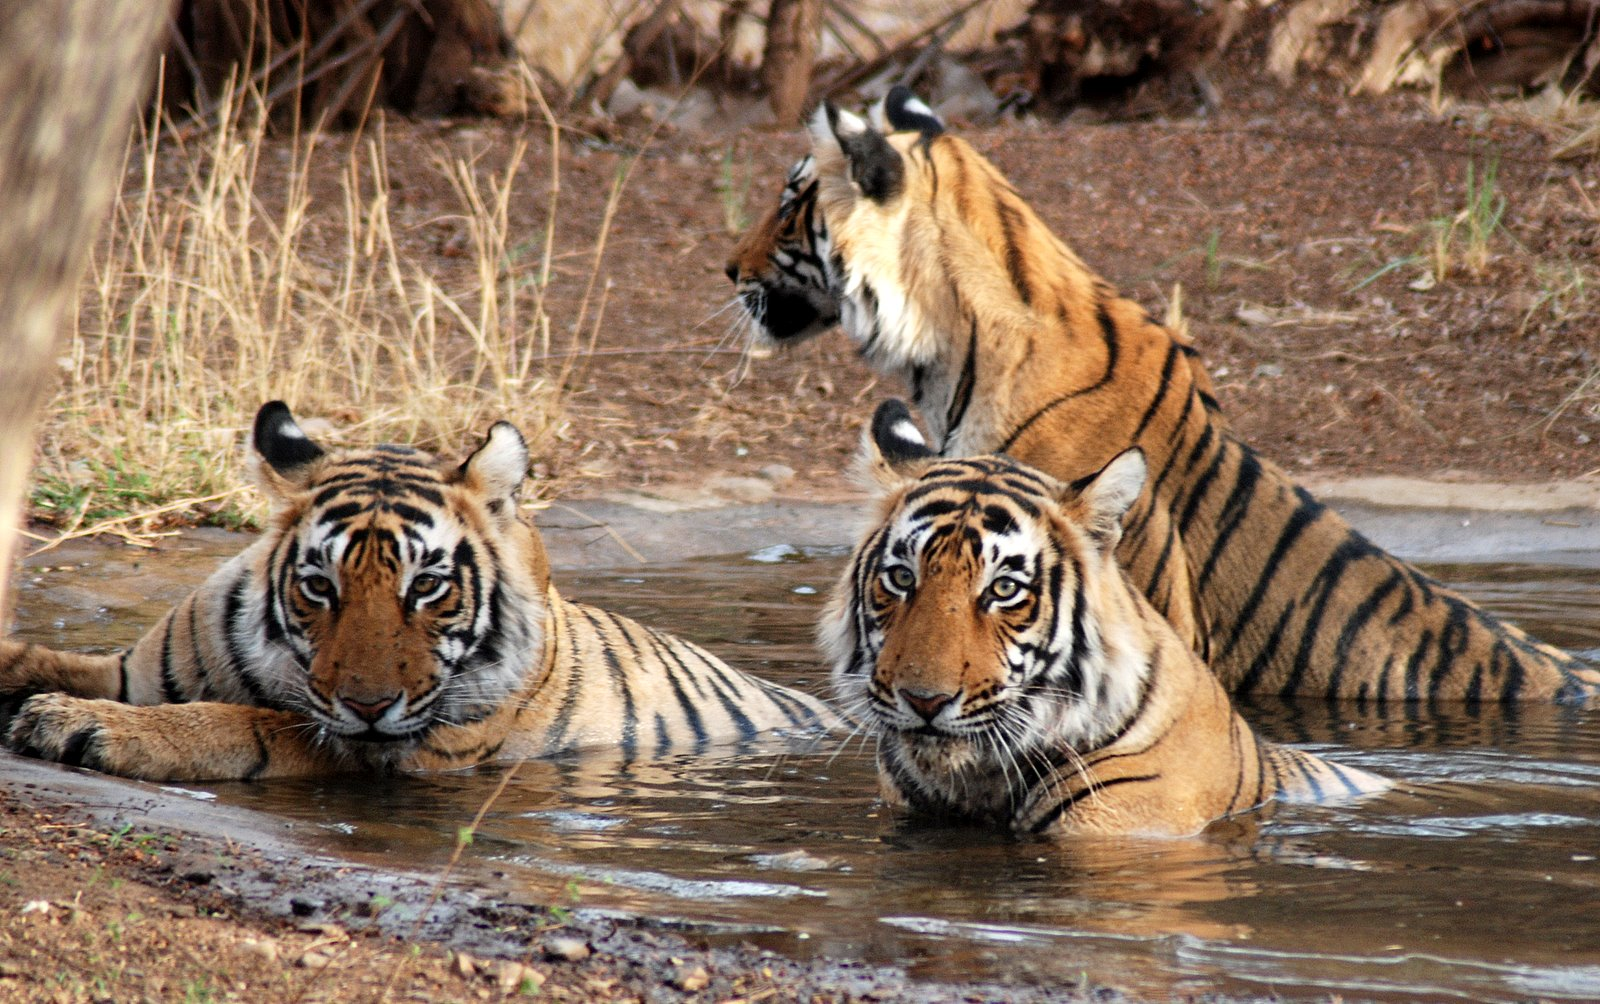 Three tigers in Ranthambore National Park